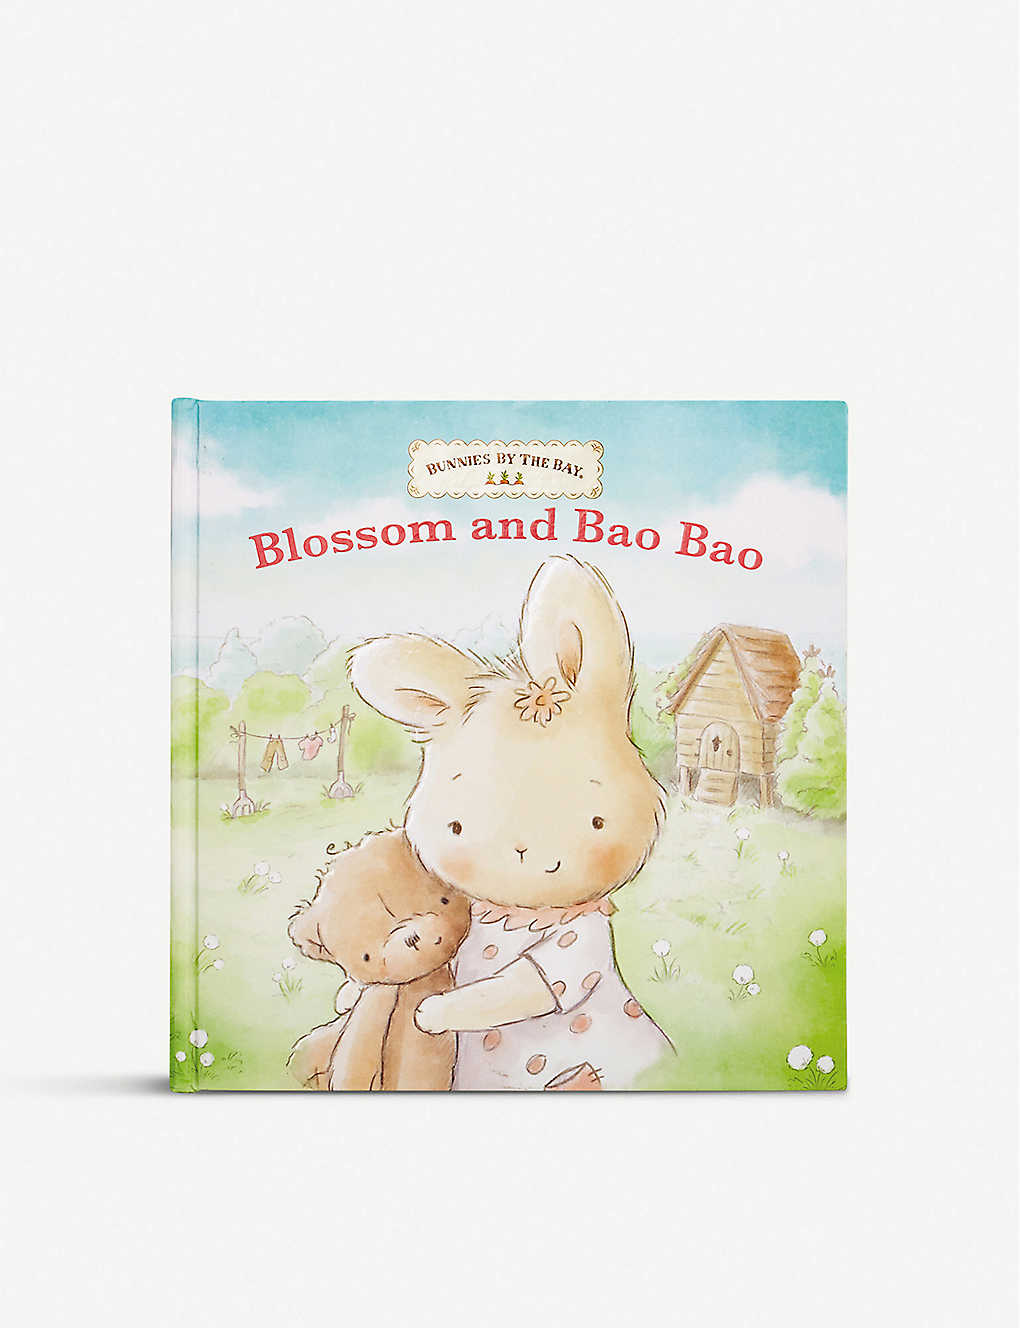 BUNNIES BY THE BAY: Blossom and Bao Bao board book